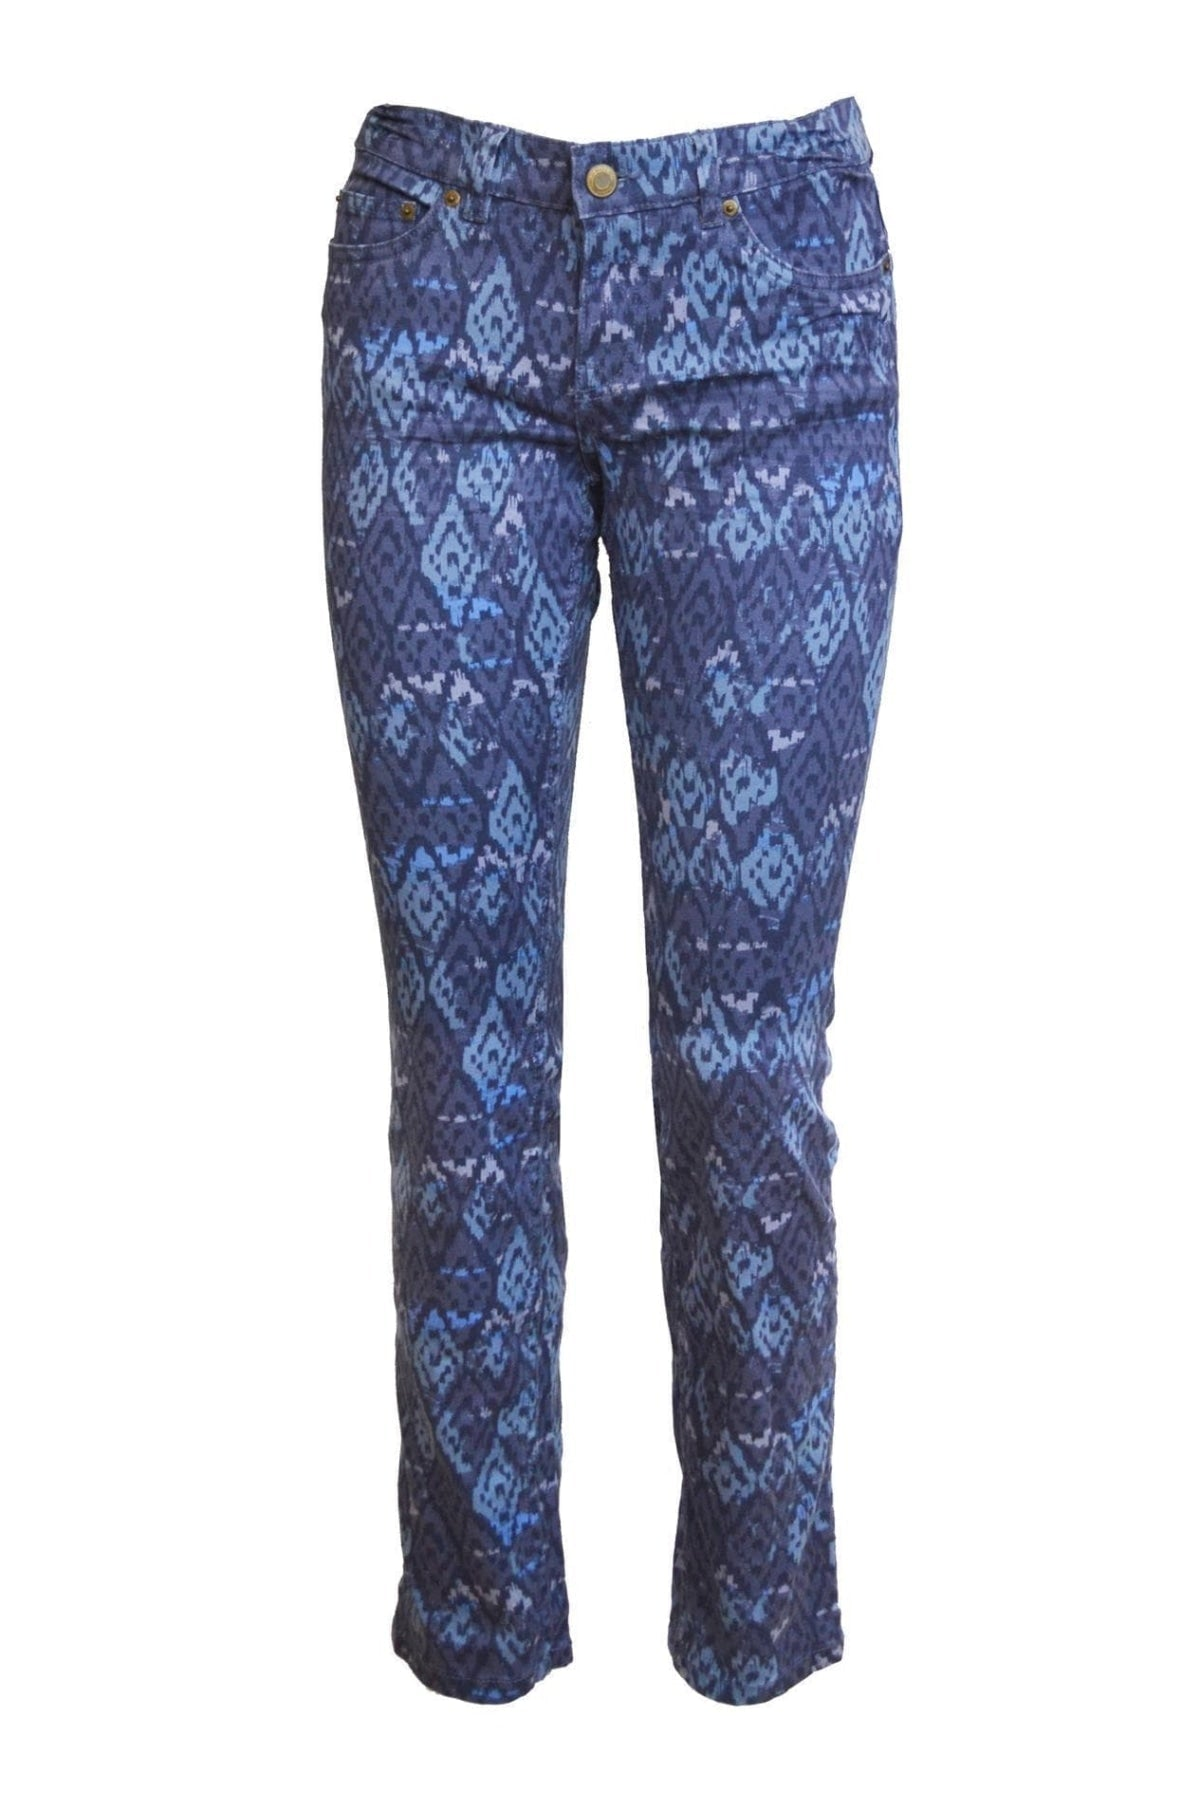 H&M Ex H&M Blue Aztec Print Skinny Jeans | Secret Label